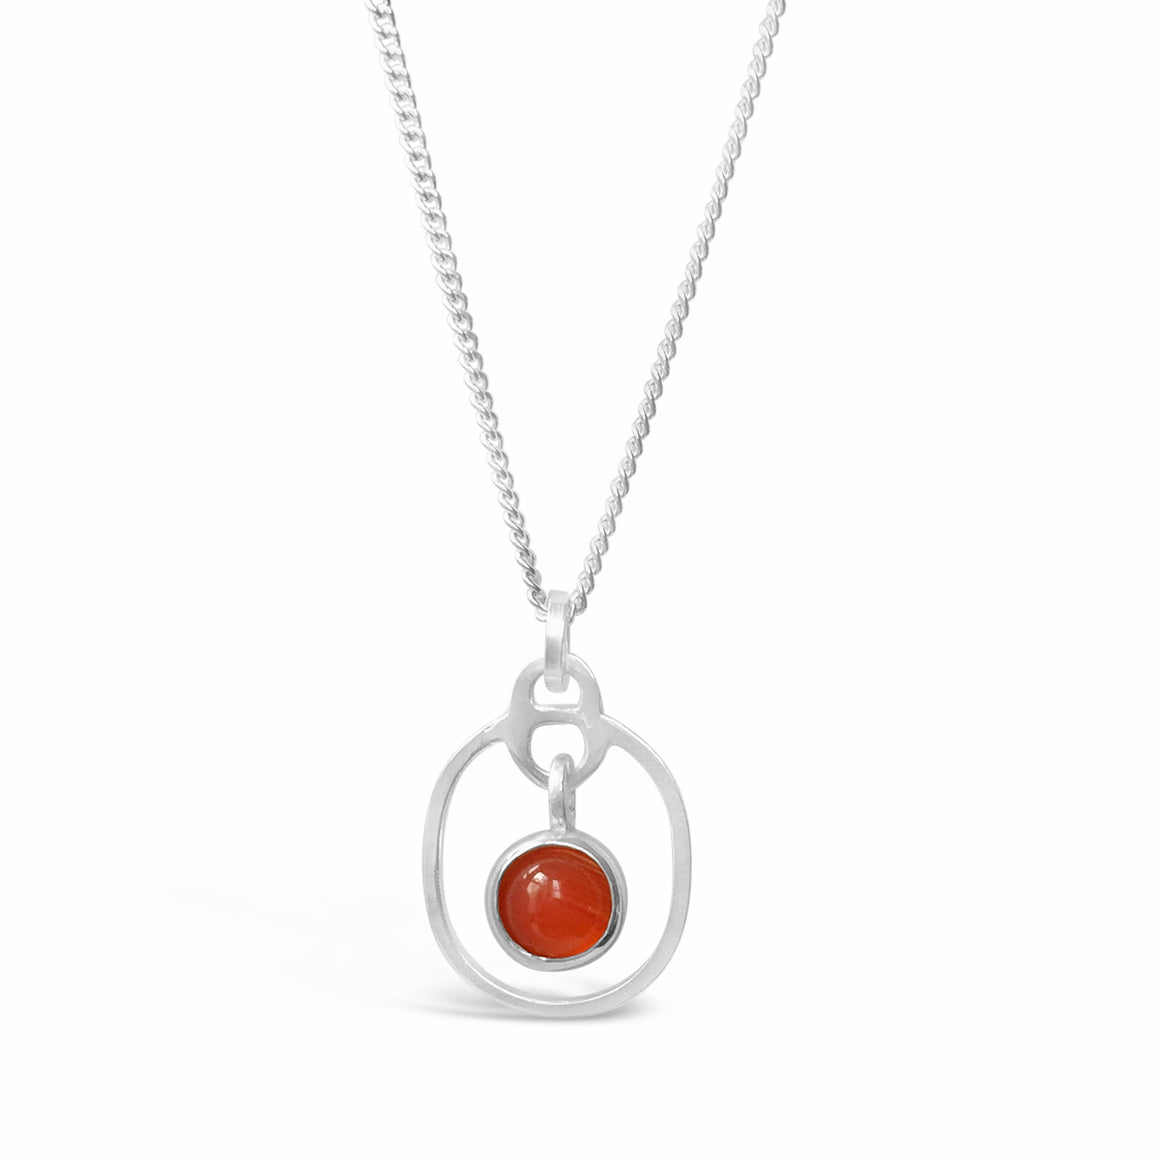 Birthstone Pendant Carnelian July